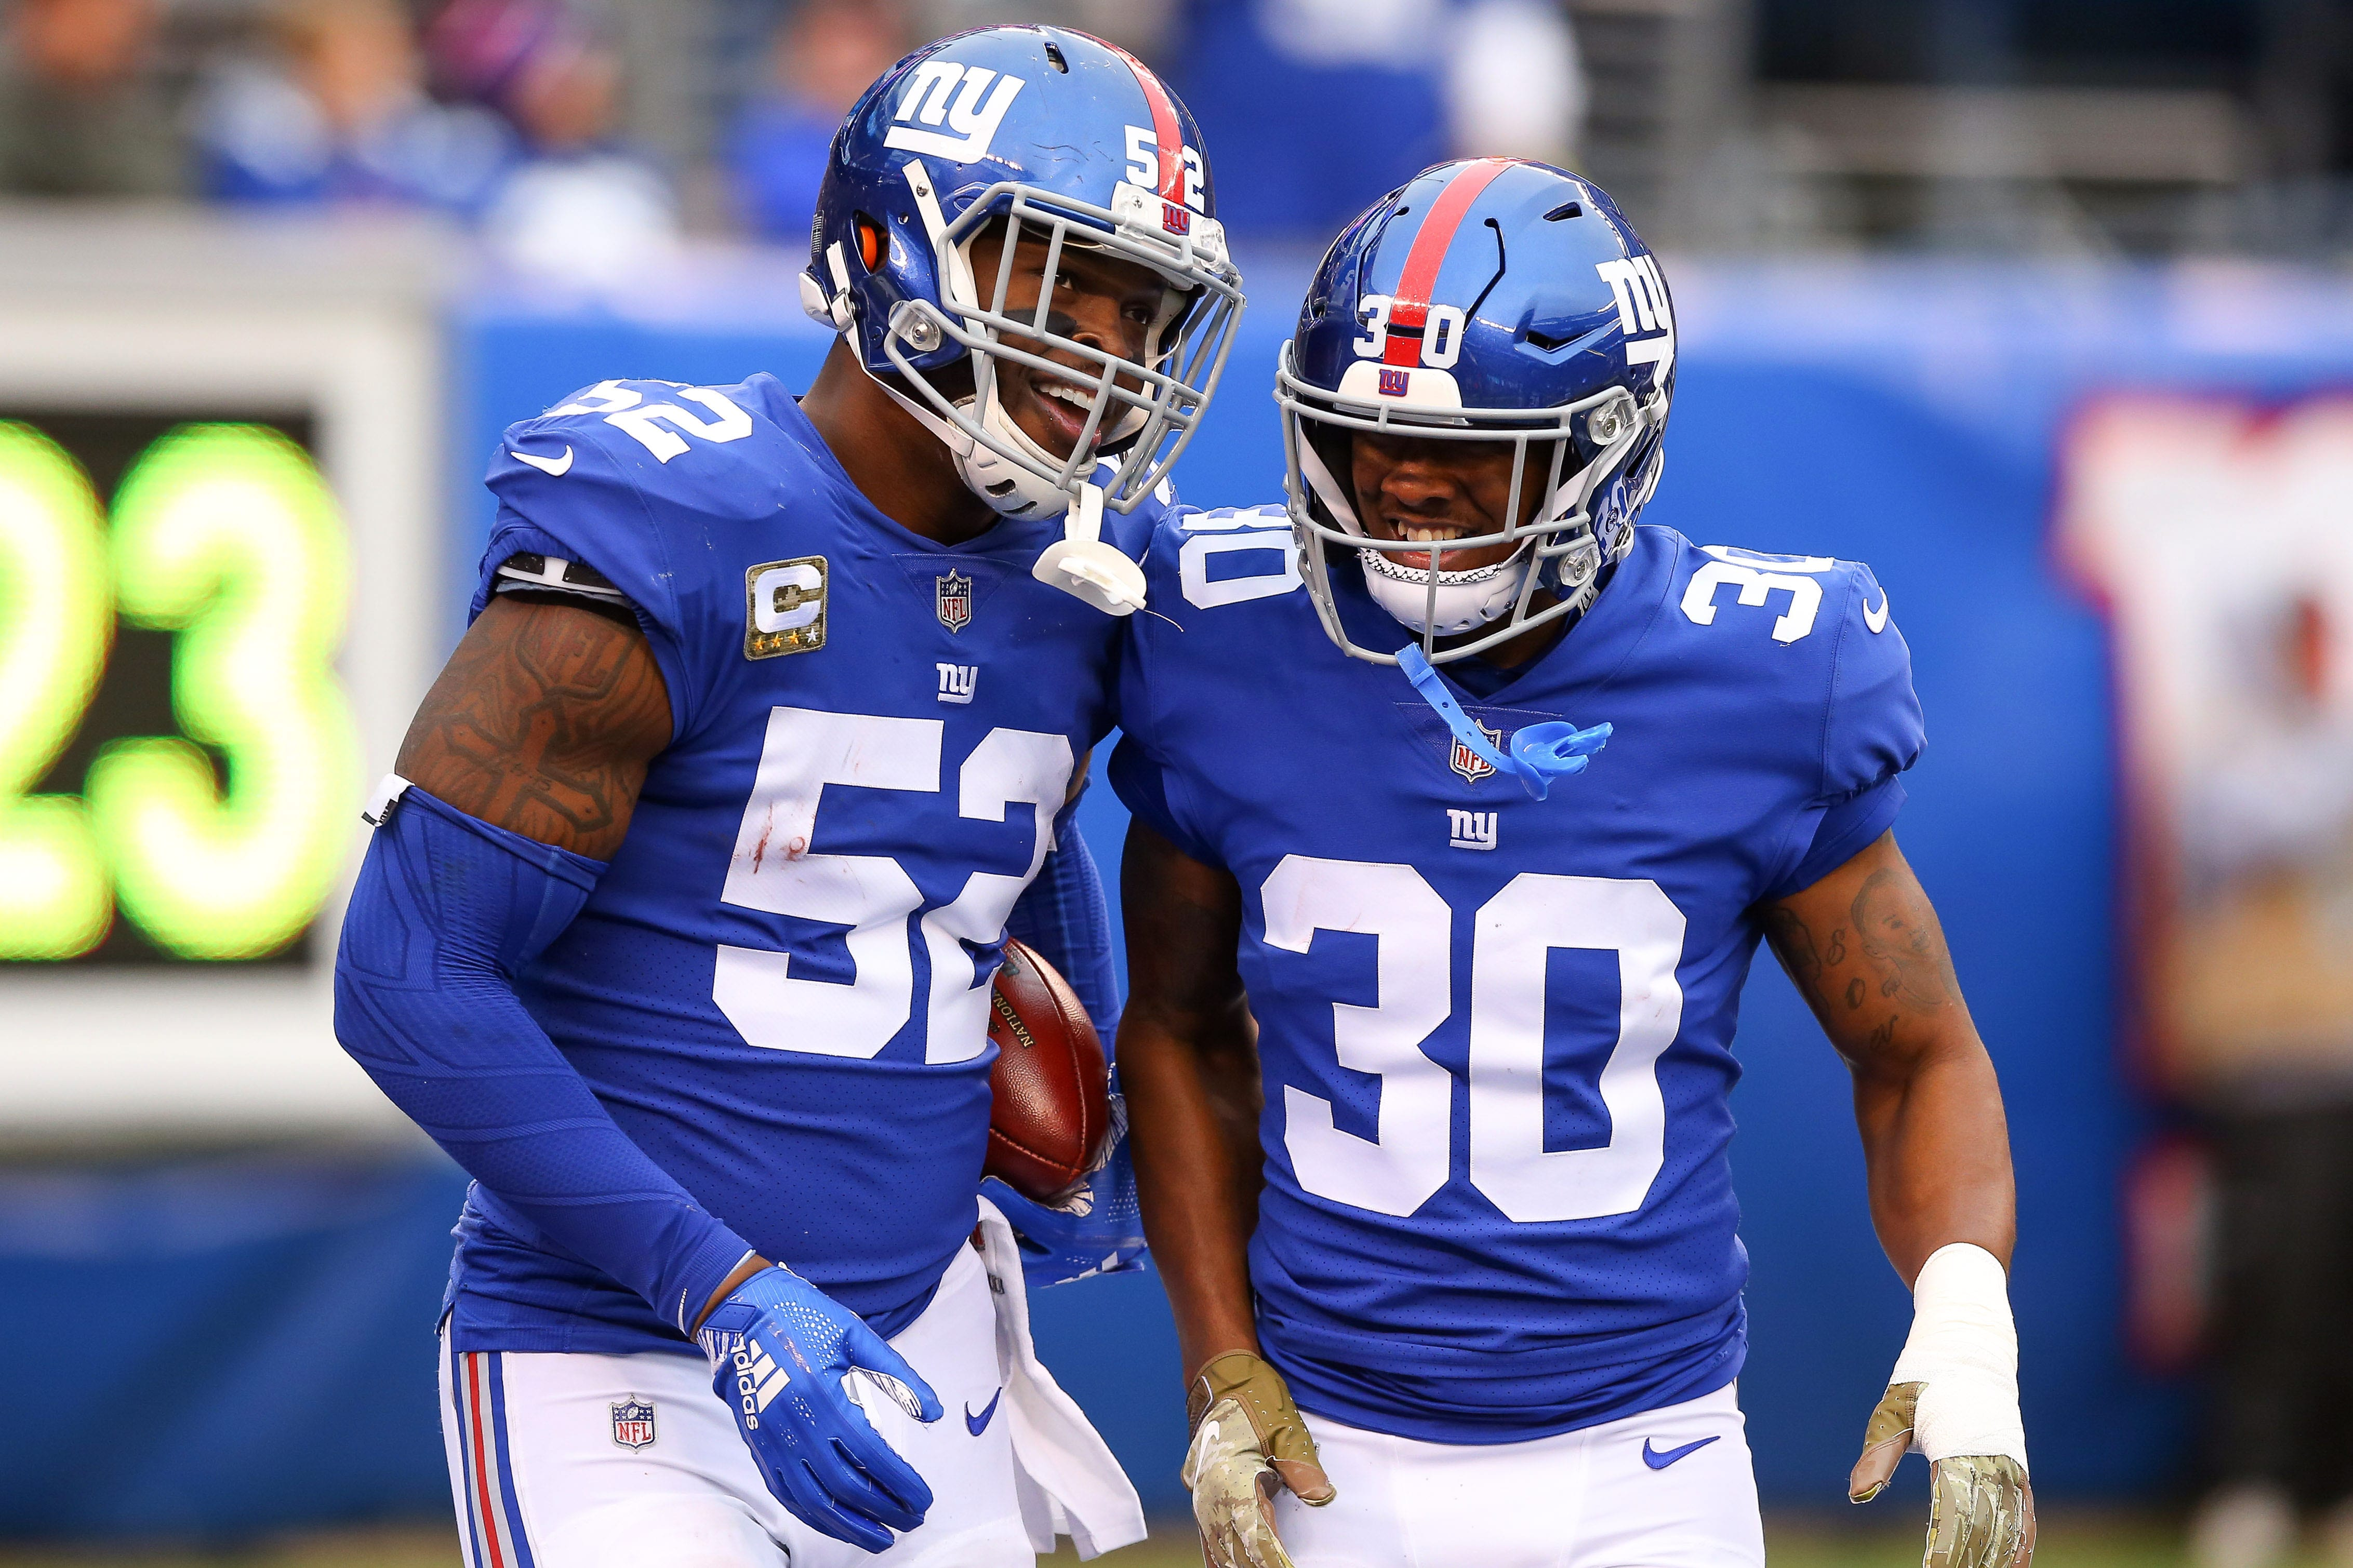 New York Giants, Alec Ogletree